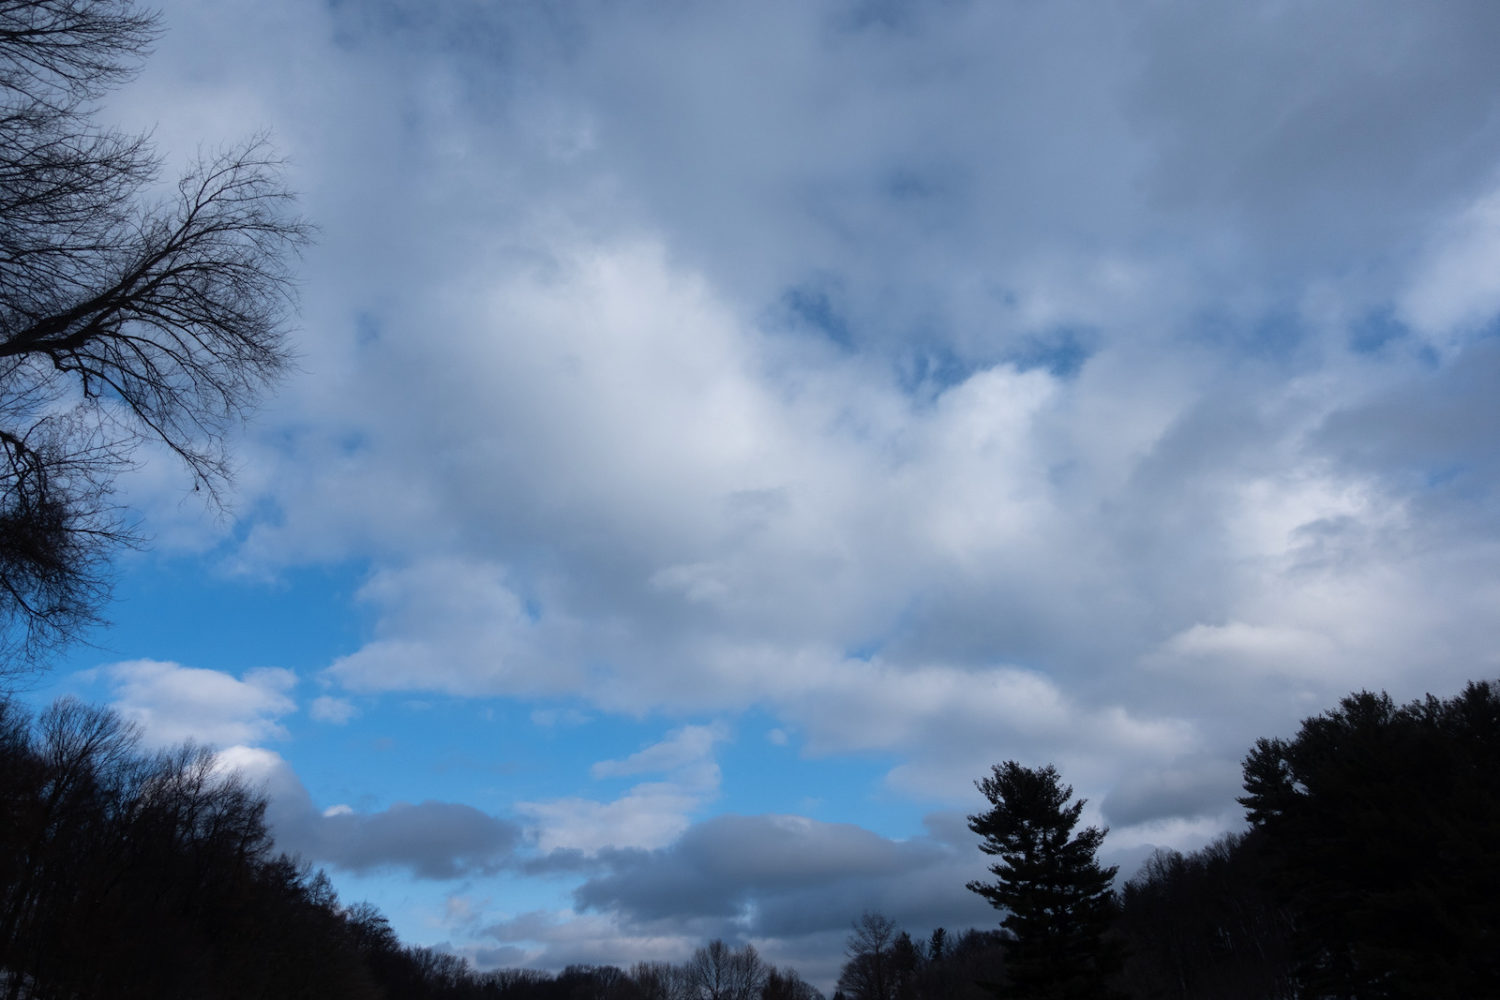 Clouds over our ski path this morning